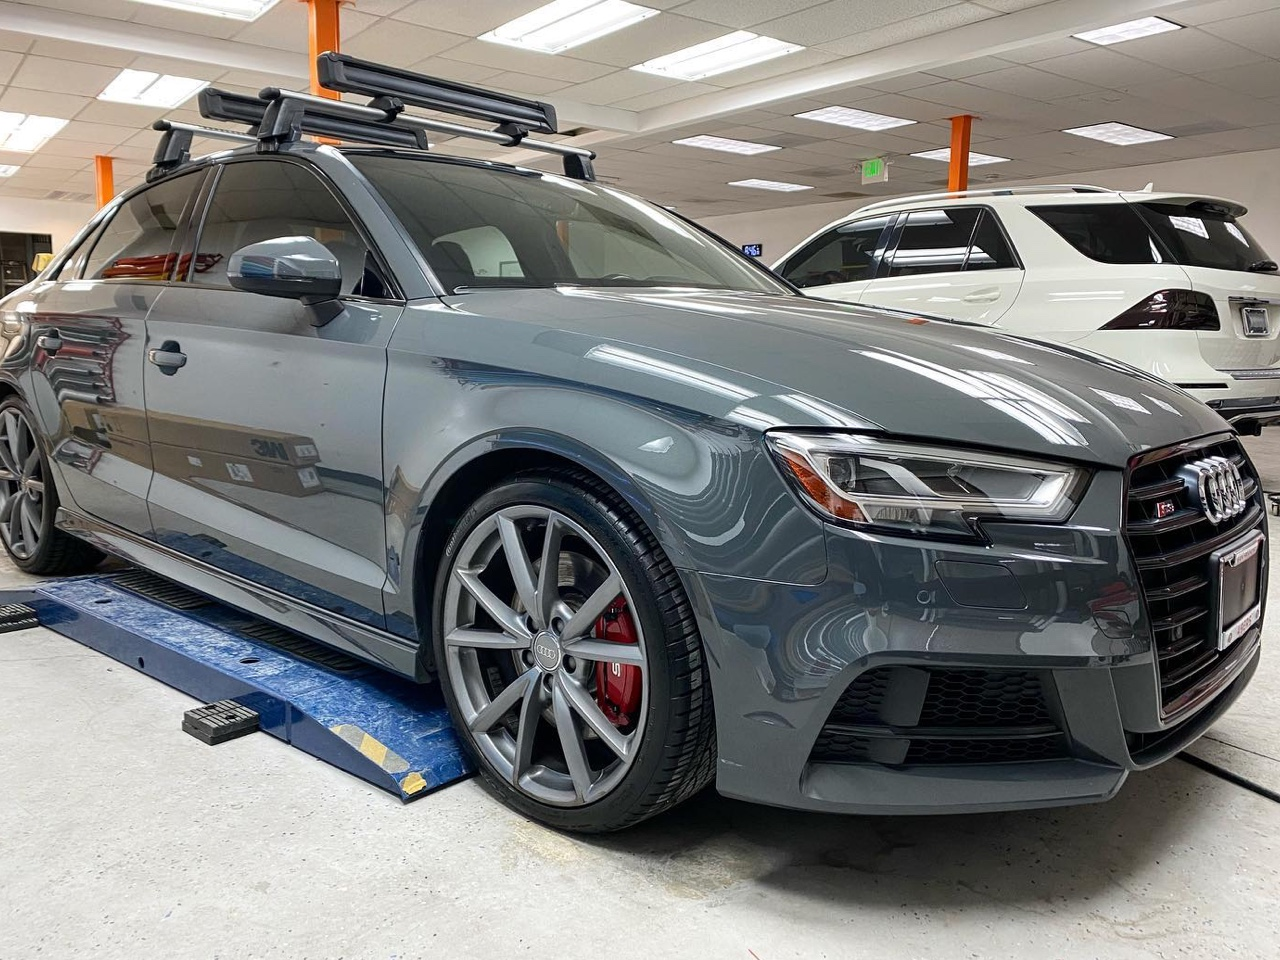 ceramic coating Audi S3. Look at how glossy that paint looks!